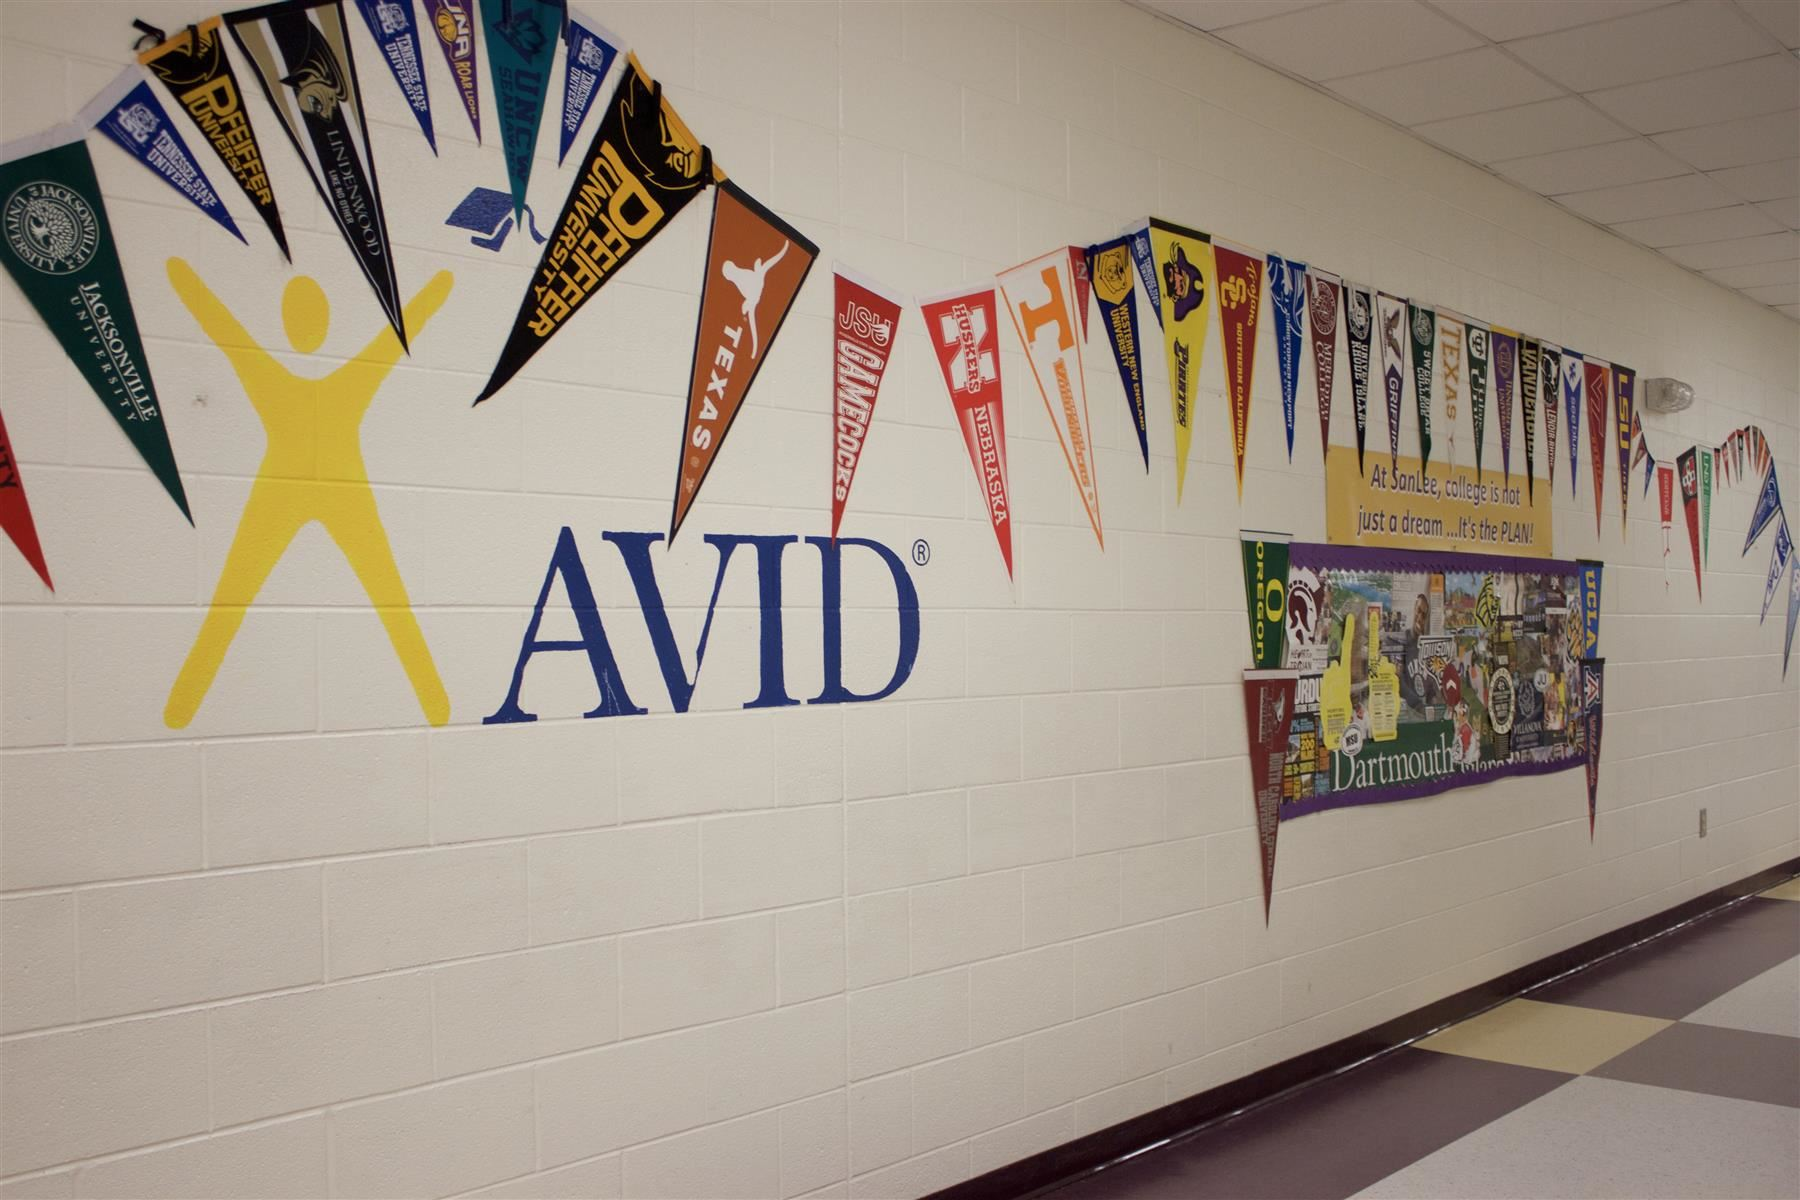 Lee County Schools has AVID-tude